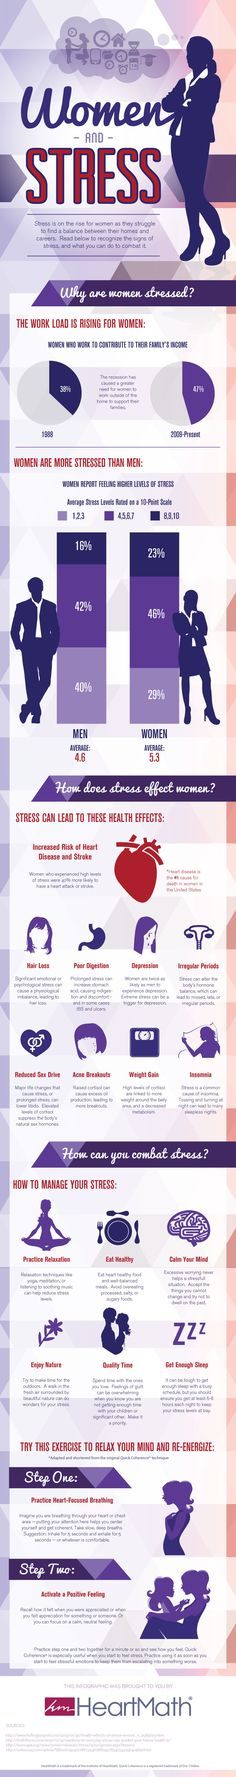 Women are more stressed than ever: #Infographic It's also National Stress Awareness Day 4.16.13